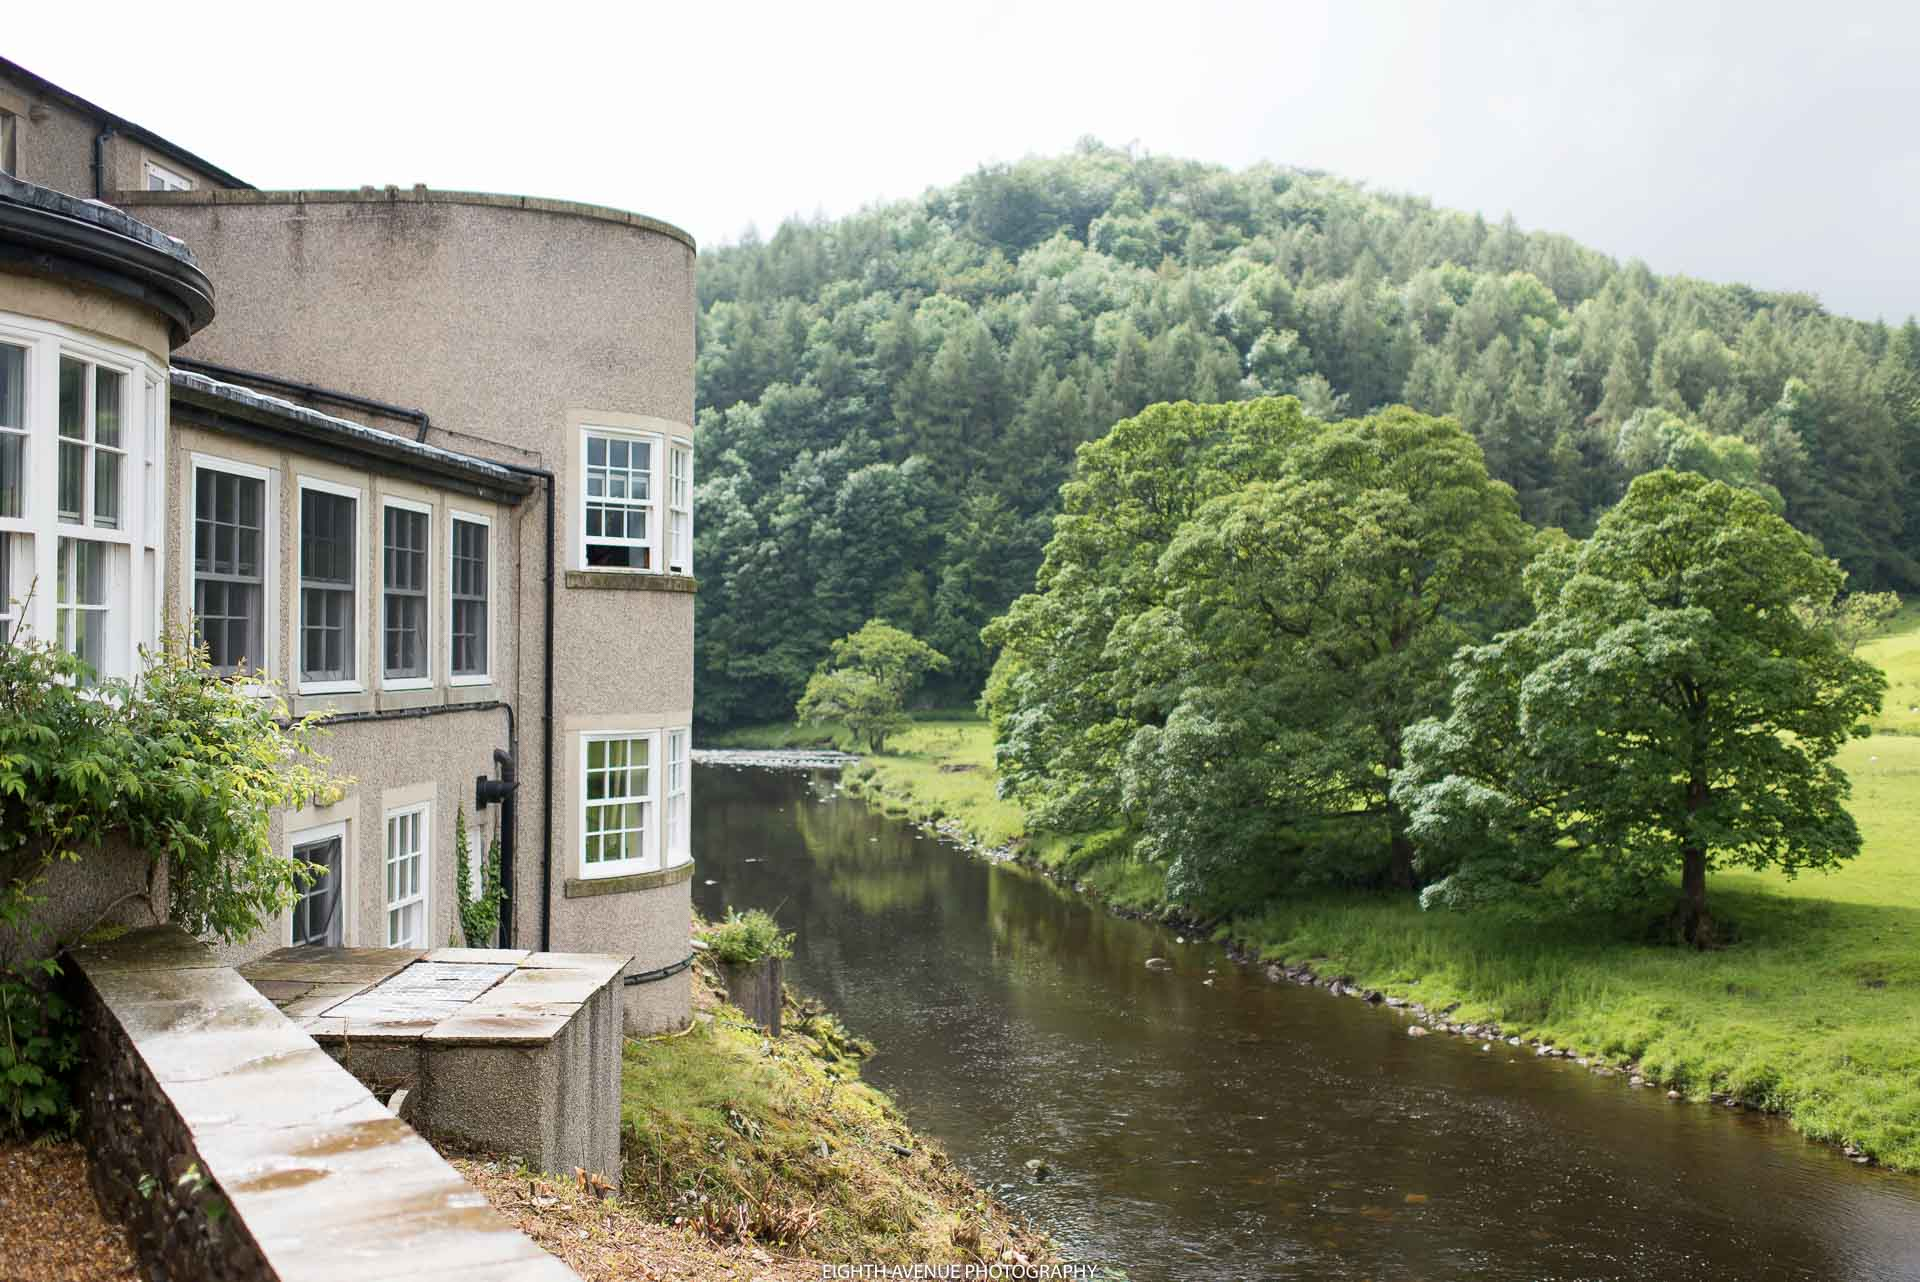 Inn at Whitewell views over the river